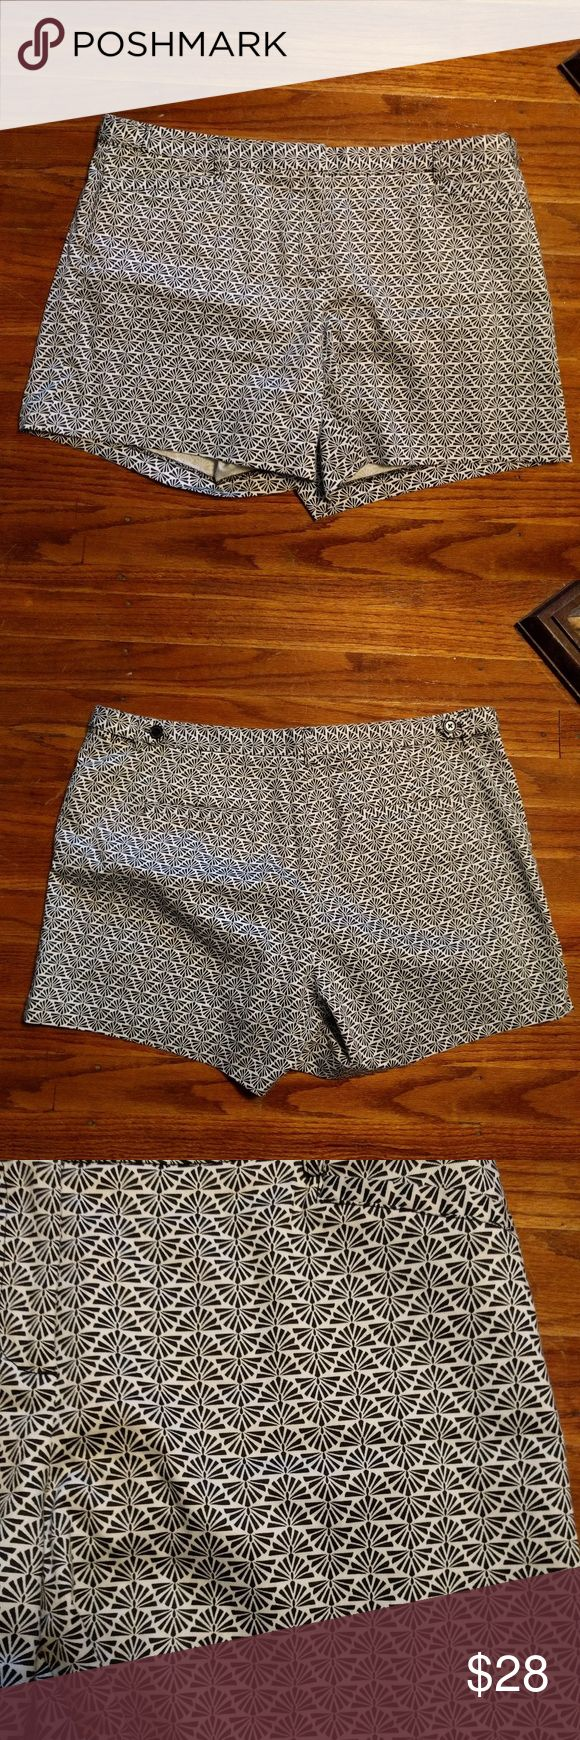 Selling this Laundry By Shelli Segal Shorts on Poshmark! My username is: lindasandmann. #shopmycloset #poshmark #fashion #shopping #style #forsale #Laundry By Shelli Segal #Pants